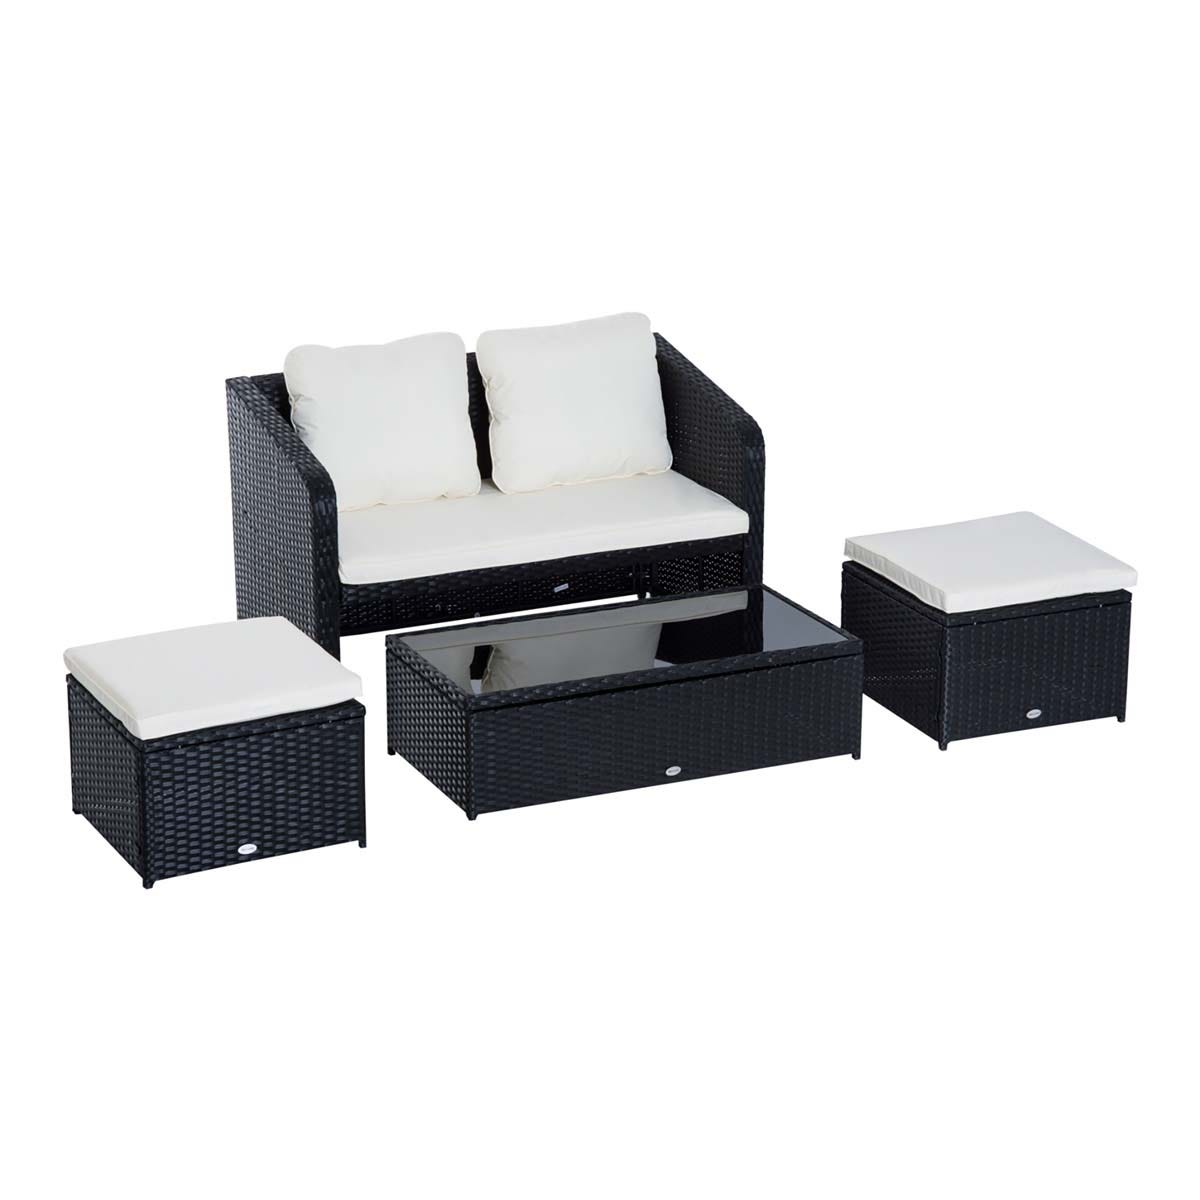 Outsunny 4 Piece Rattan Sofa Set with Height Adjustable Table - Black